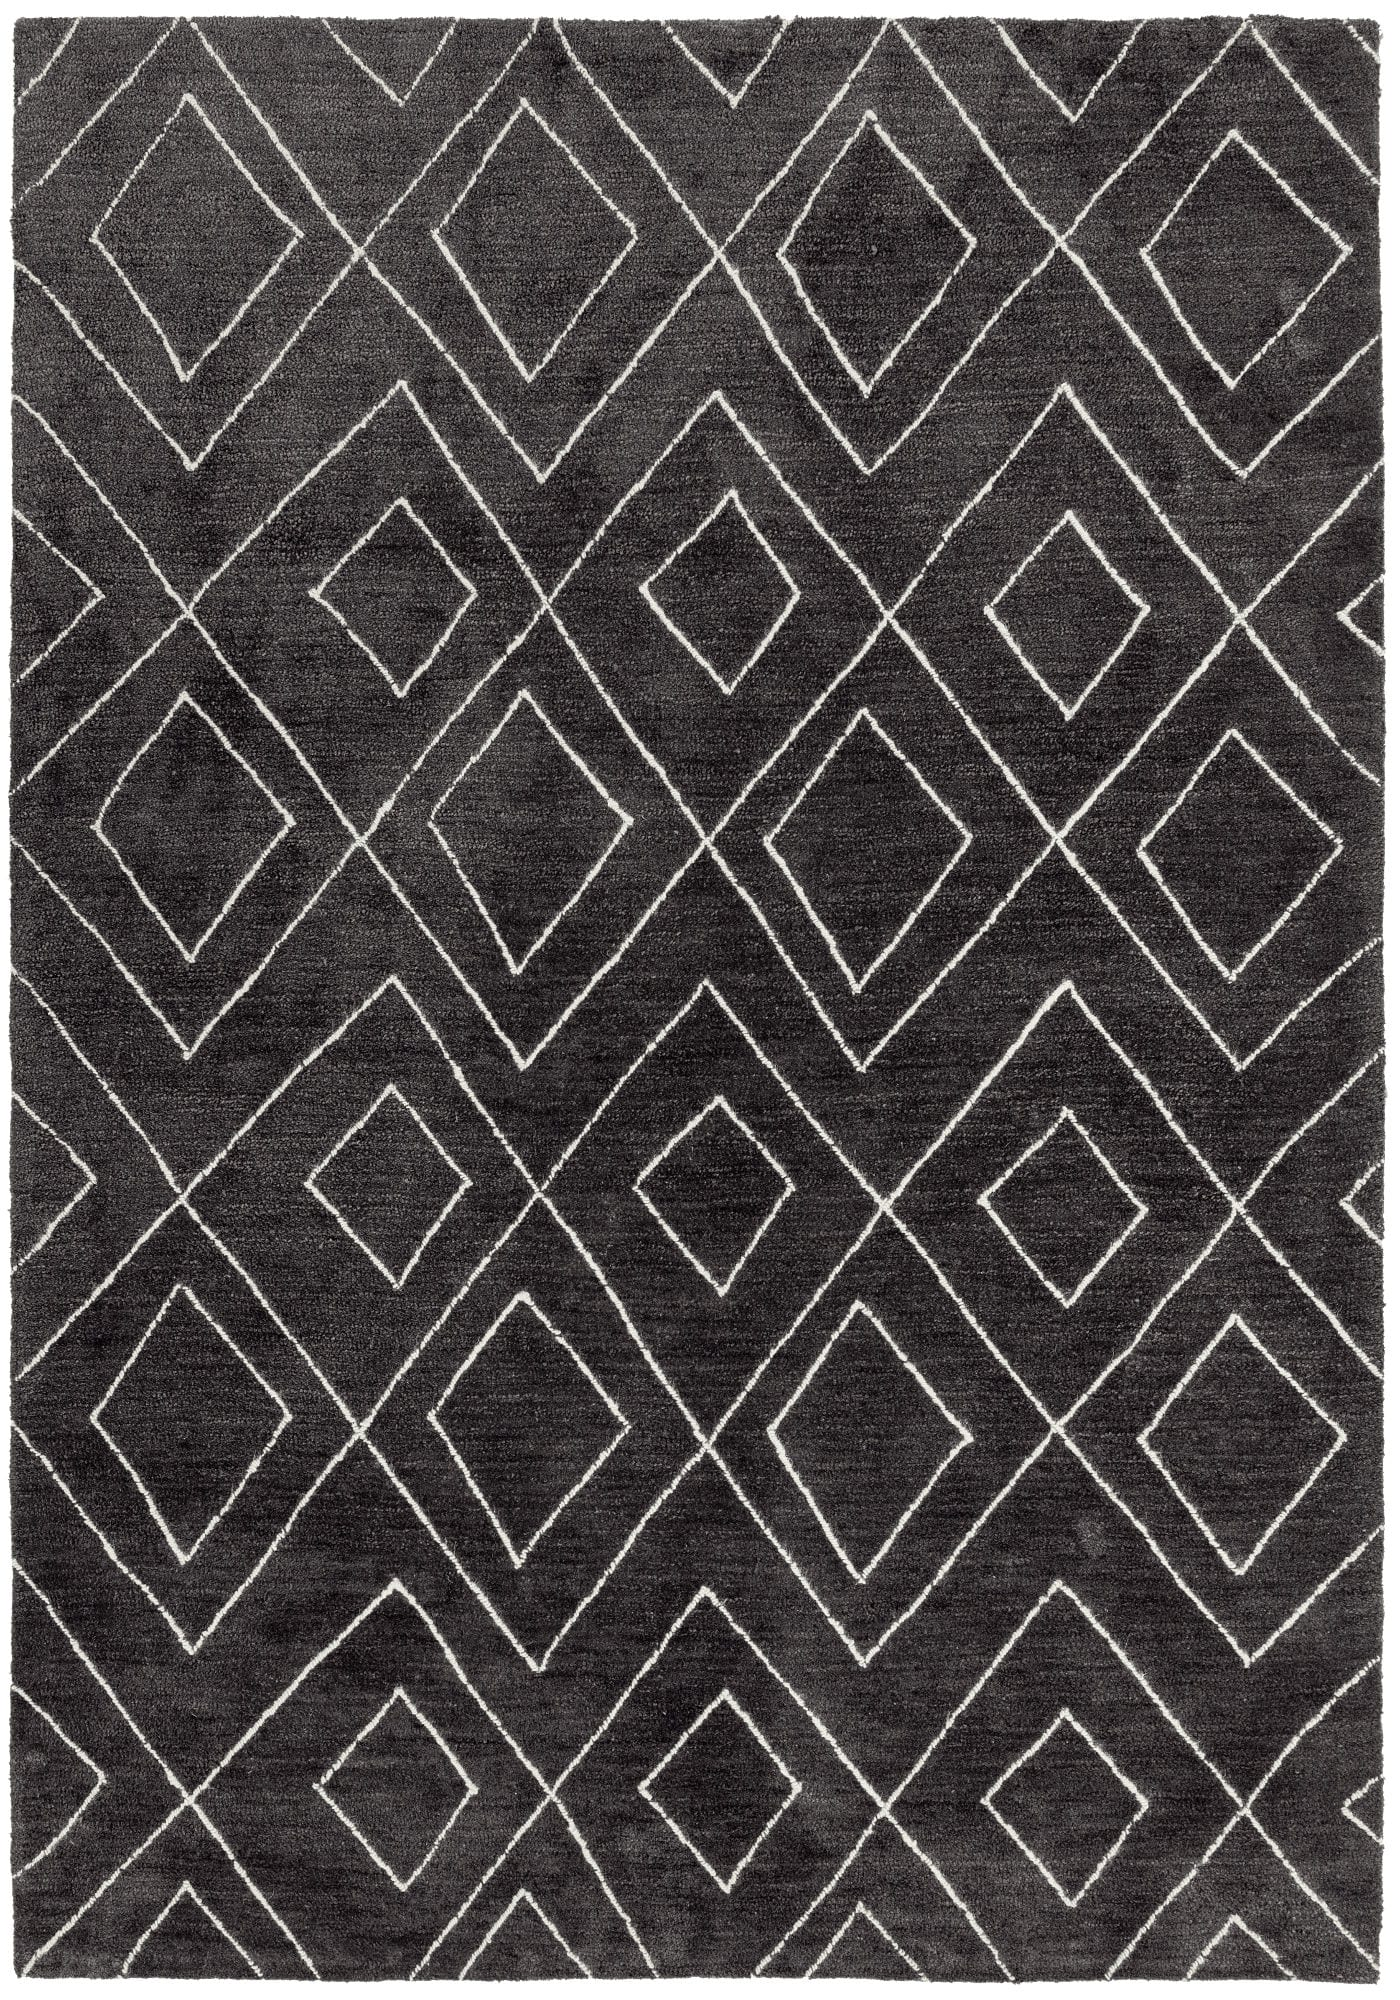 Nomad Rug By Asiatic Carpets Colour Dark Grey Nm01 Rugs Uk